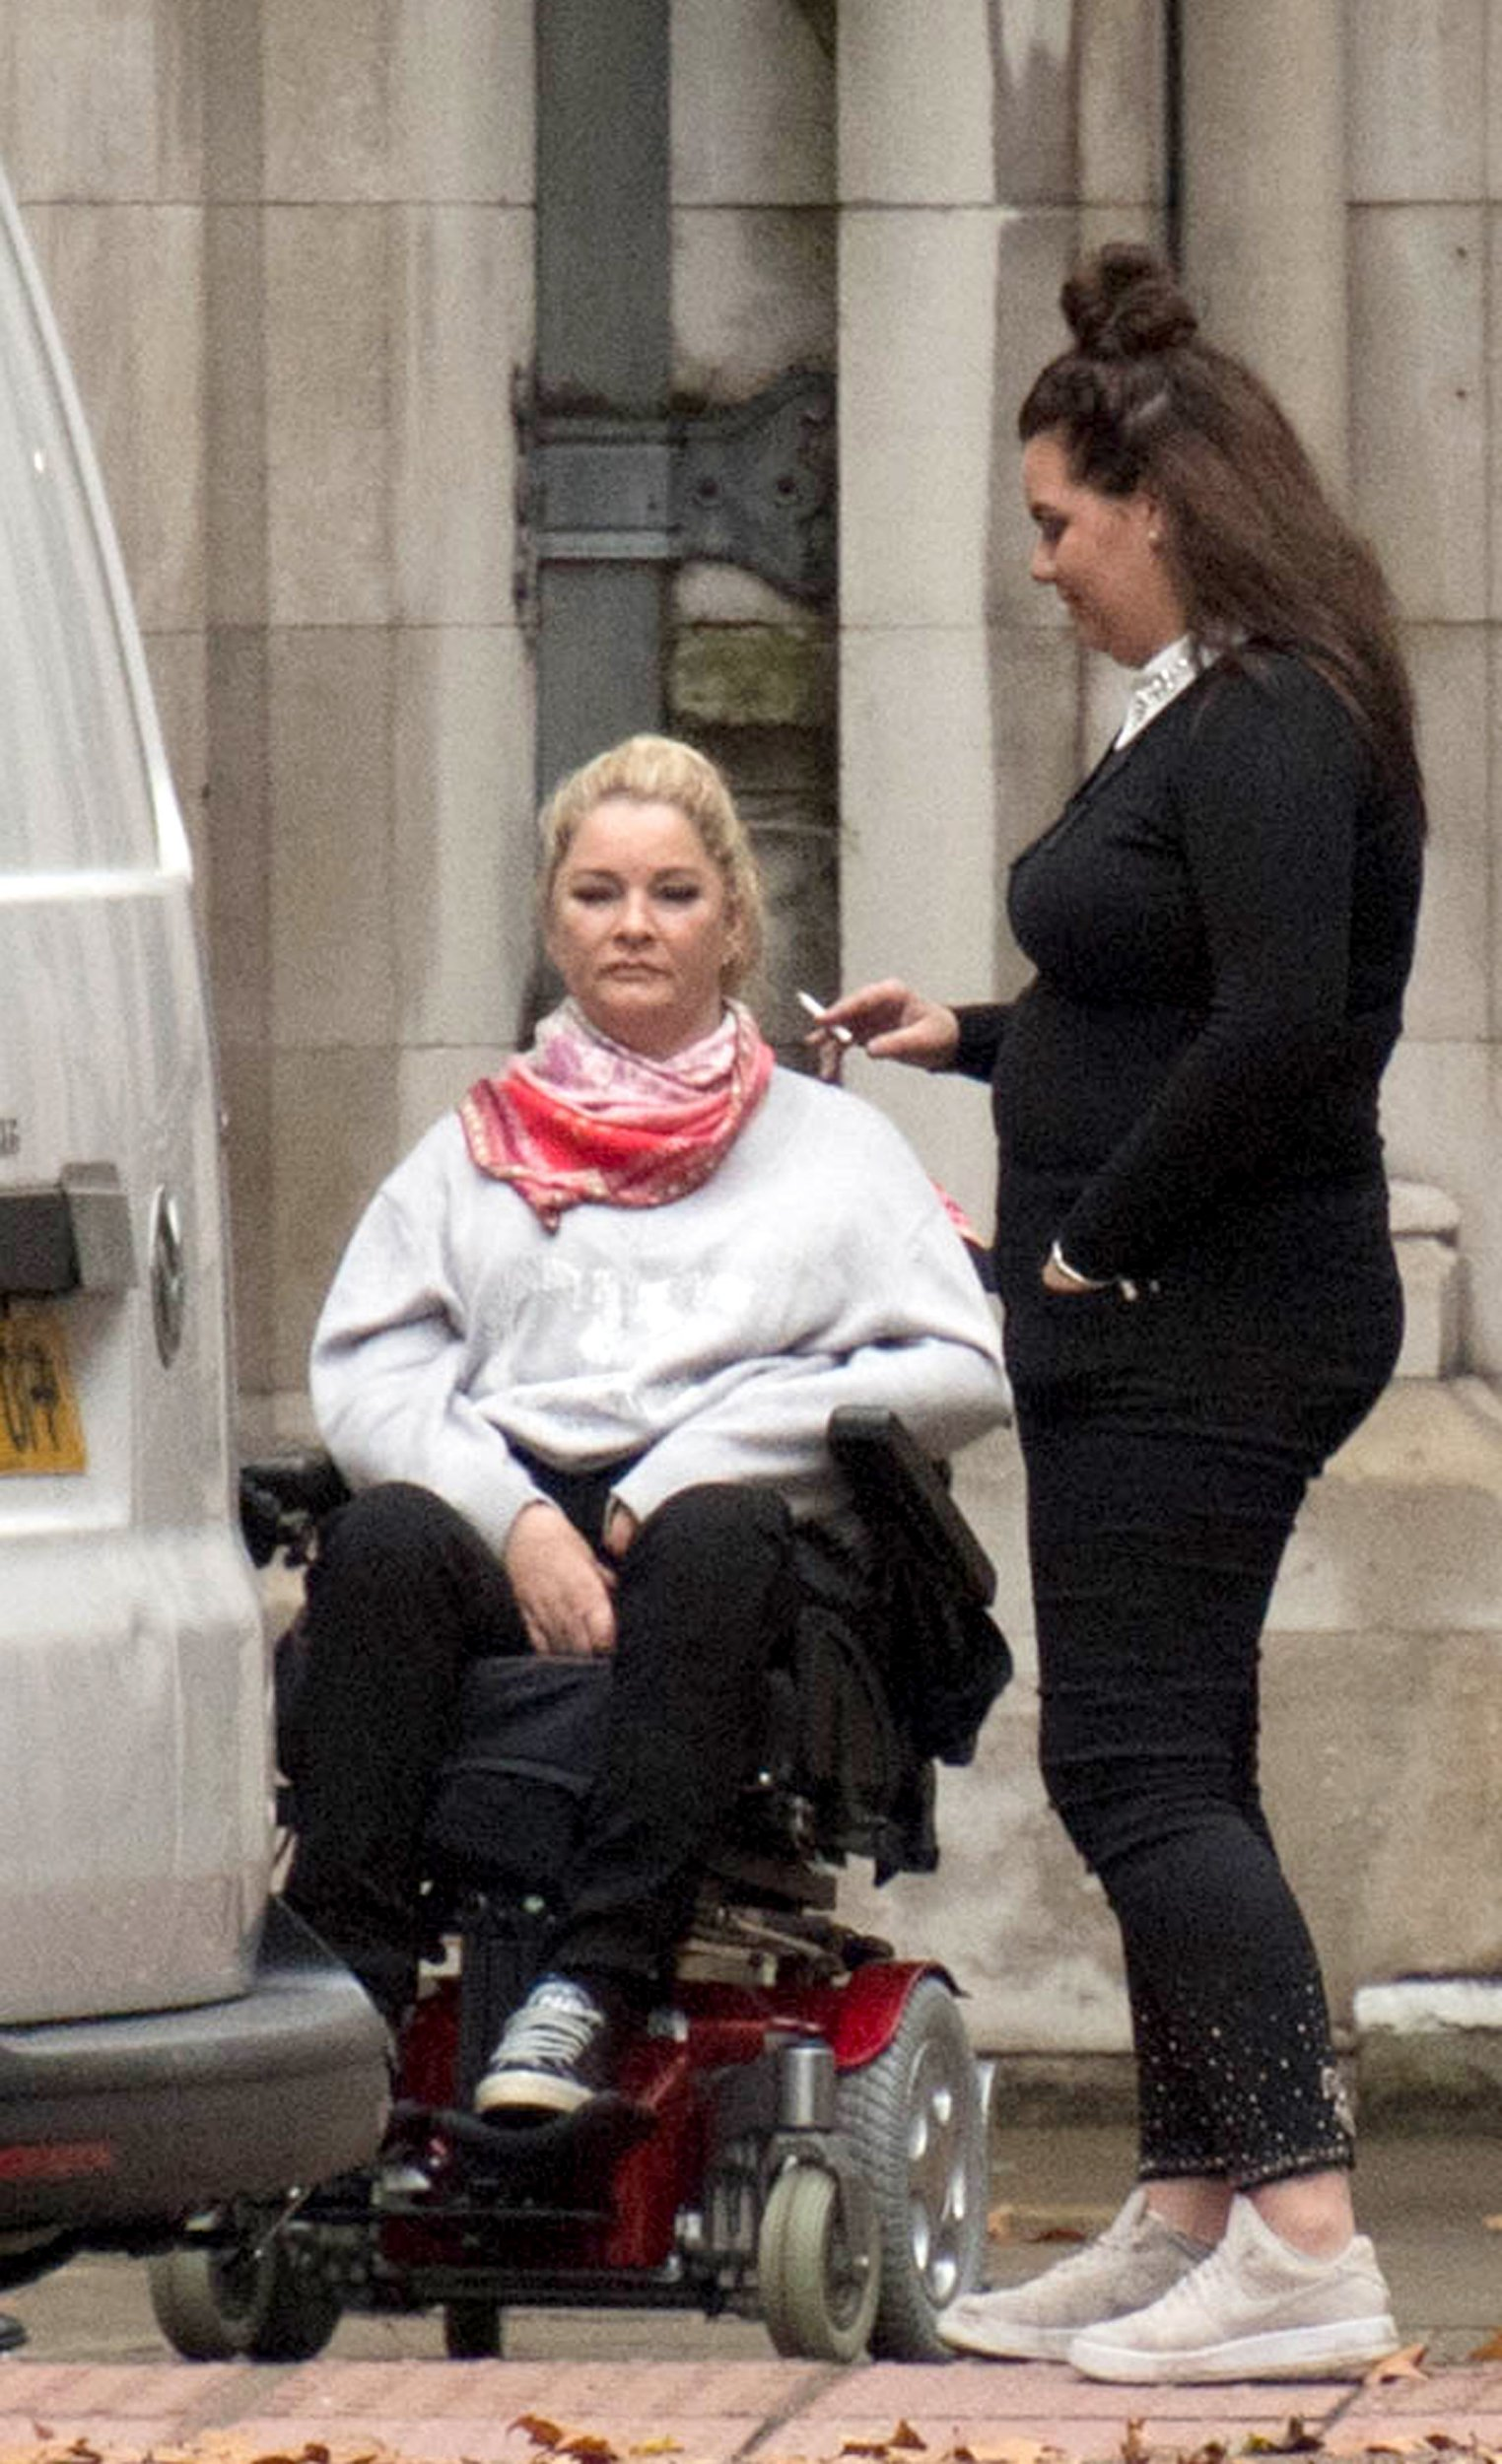 Claire Busby, 46, (left), of Maidenhead, Berkshire, outside the High Court in London, where she is suing Berkshire Bed Company, trading as Beds Are Uzzz, for seven-figure damages, after she was left paralysed after being ?catapulted? from her new bed during a sex session. PRESS ASSOCIATION Photo. Picture date: Monday October 15 2018. Ms Busby suffered a serious injury to her spine when she fell from the super king-size double divan as she shifted her position. The 46-year-old claims the bed was in a ?defective state? at the time of her accident. See PA story COURTS Catapulted. Photo credit should read: Stefan Rousseau/PA Wire